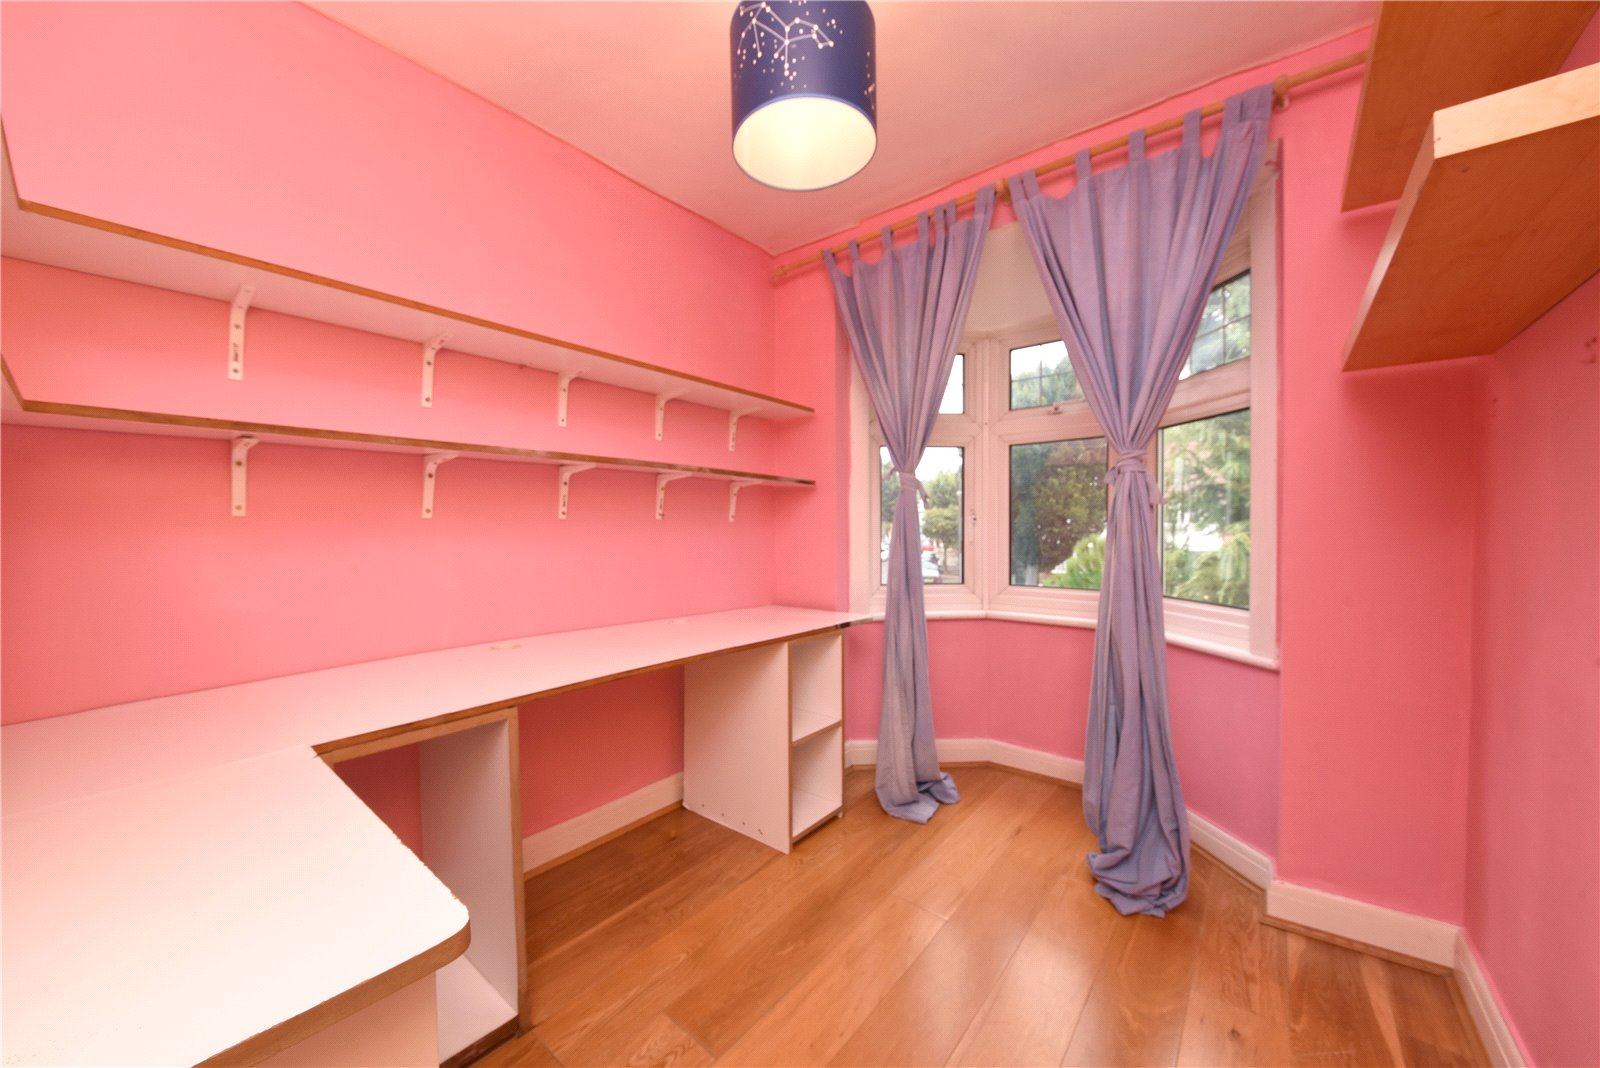 4 bed house to rent in Longland Drive, Totteridge  - Property Image 10